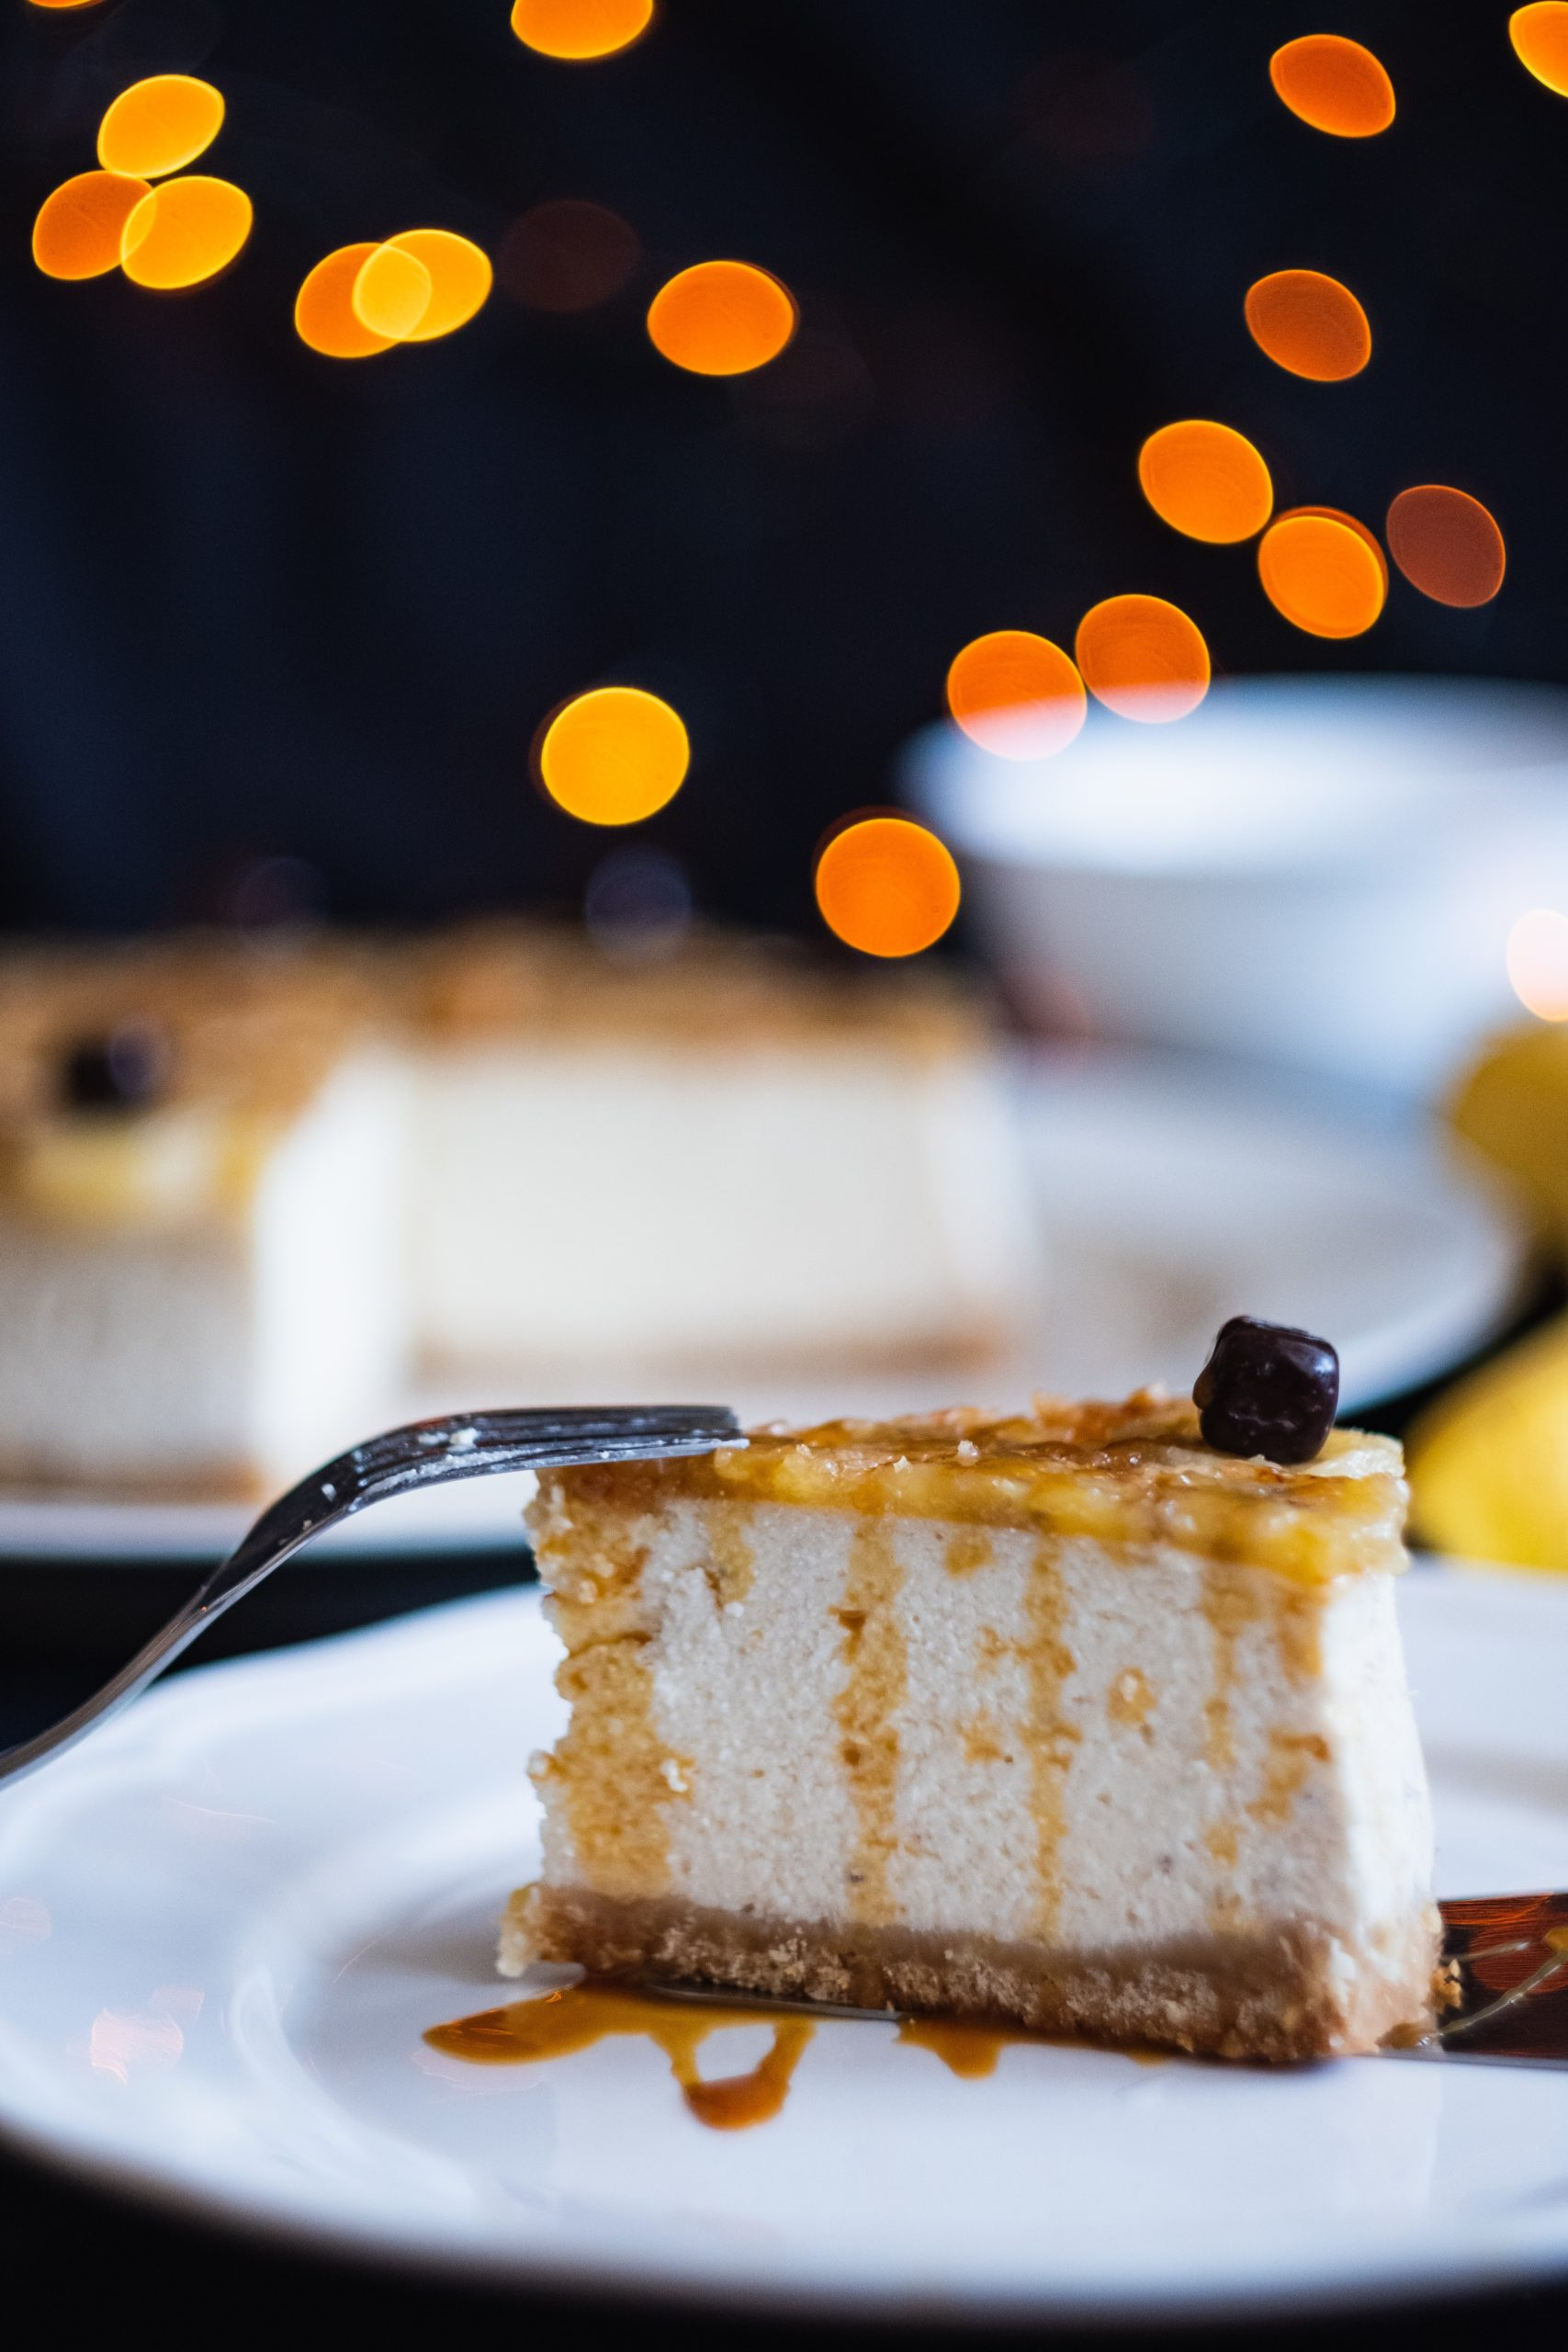 Cheese Cake Factory Of Overton: Things To Know